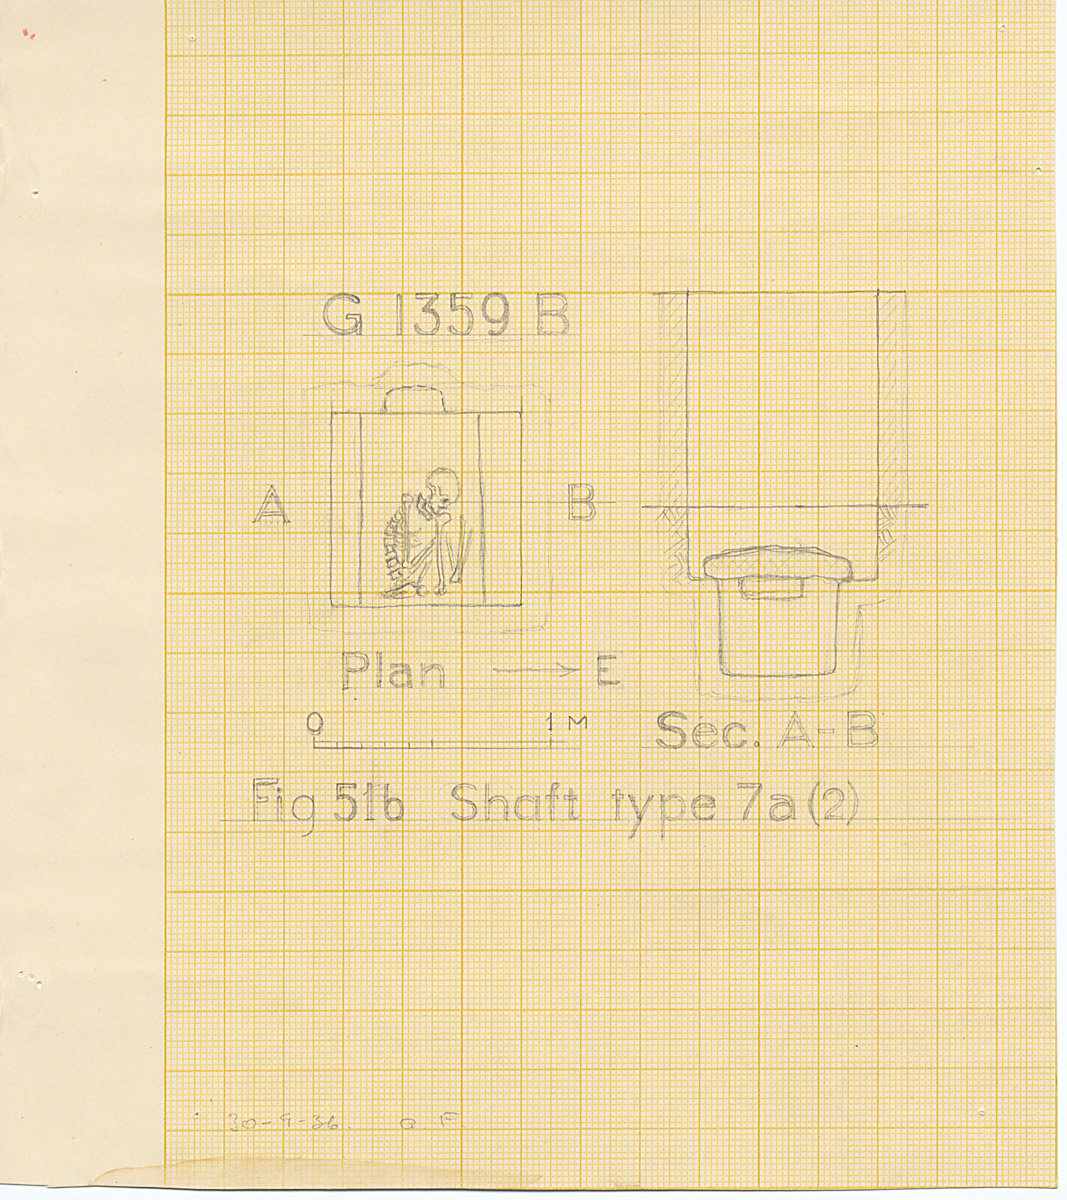 Maps and plans: G 1359, Shaft B